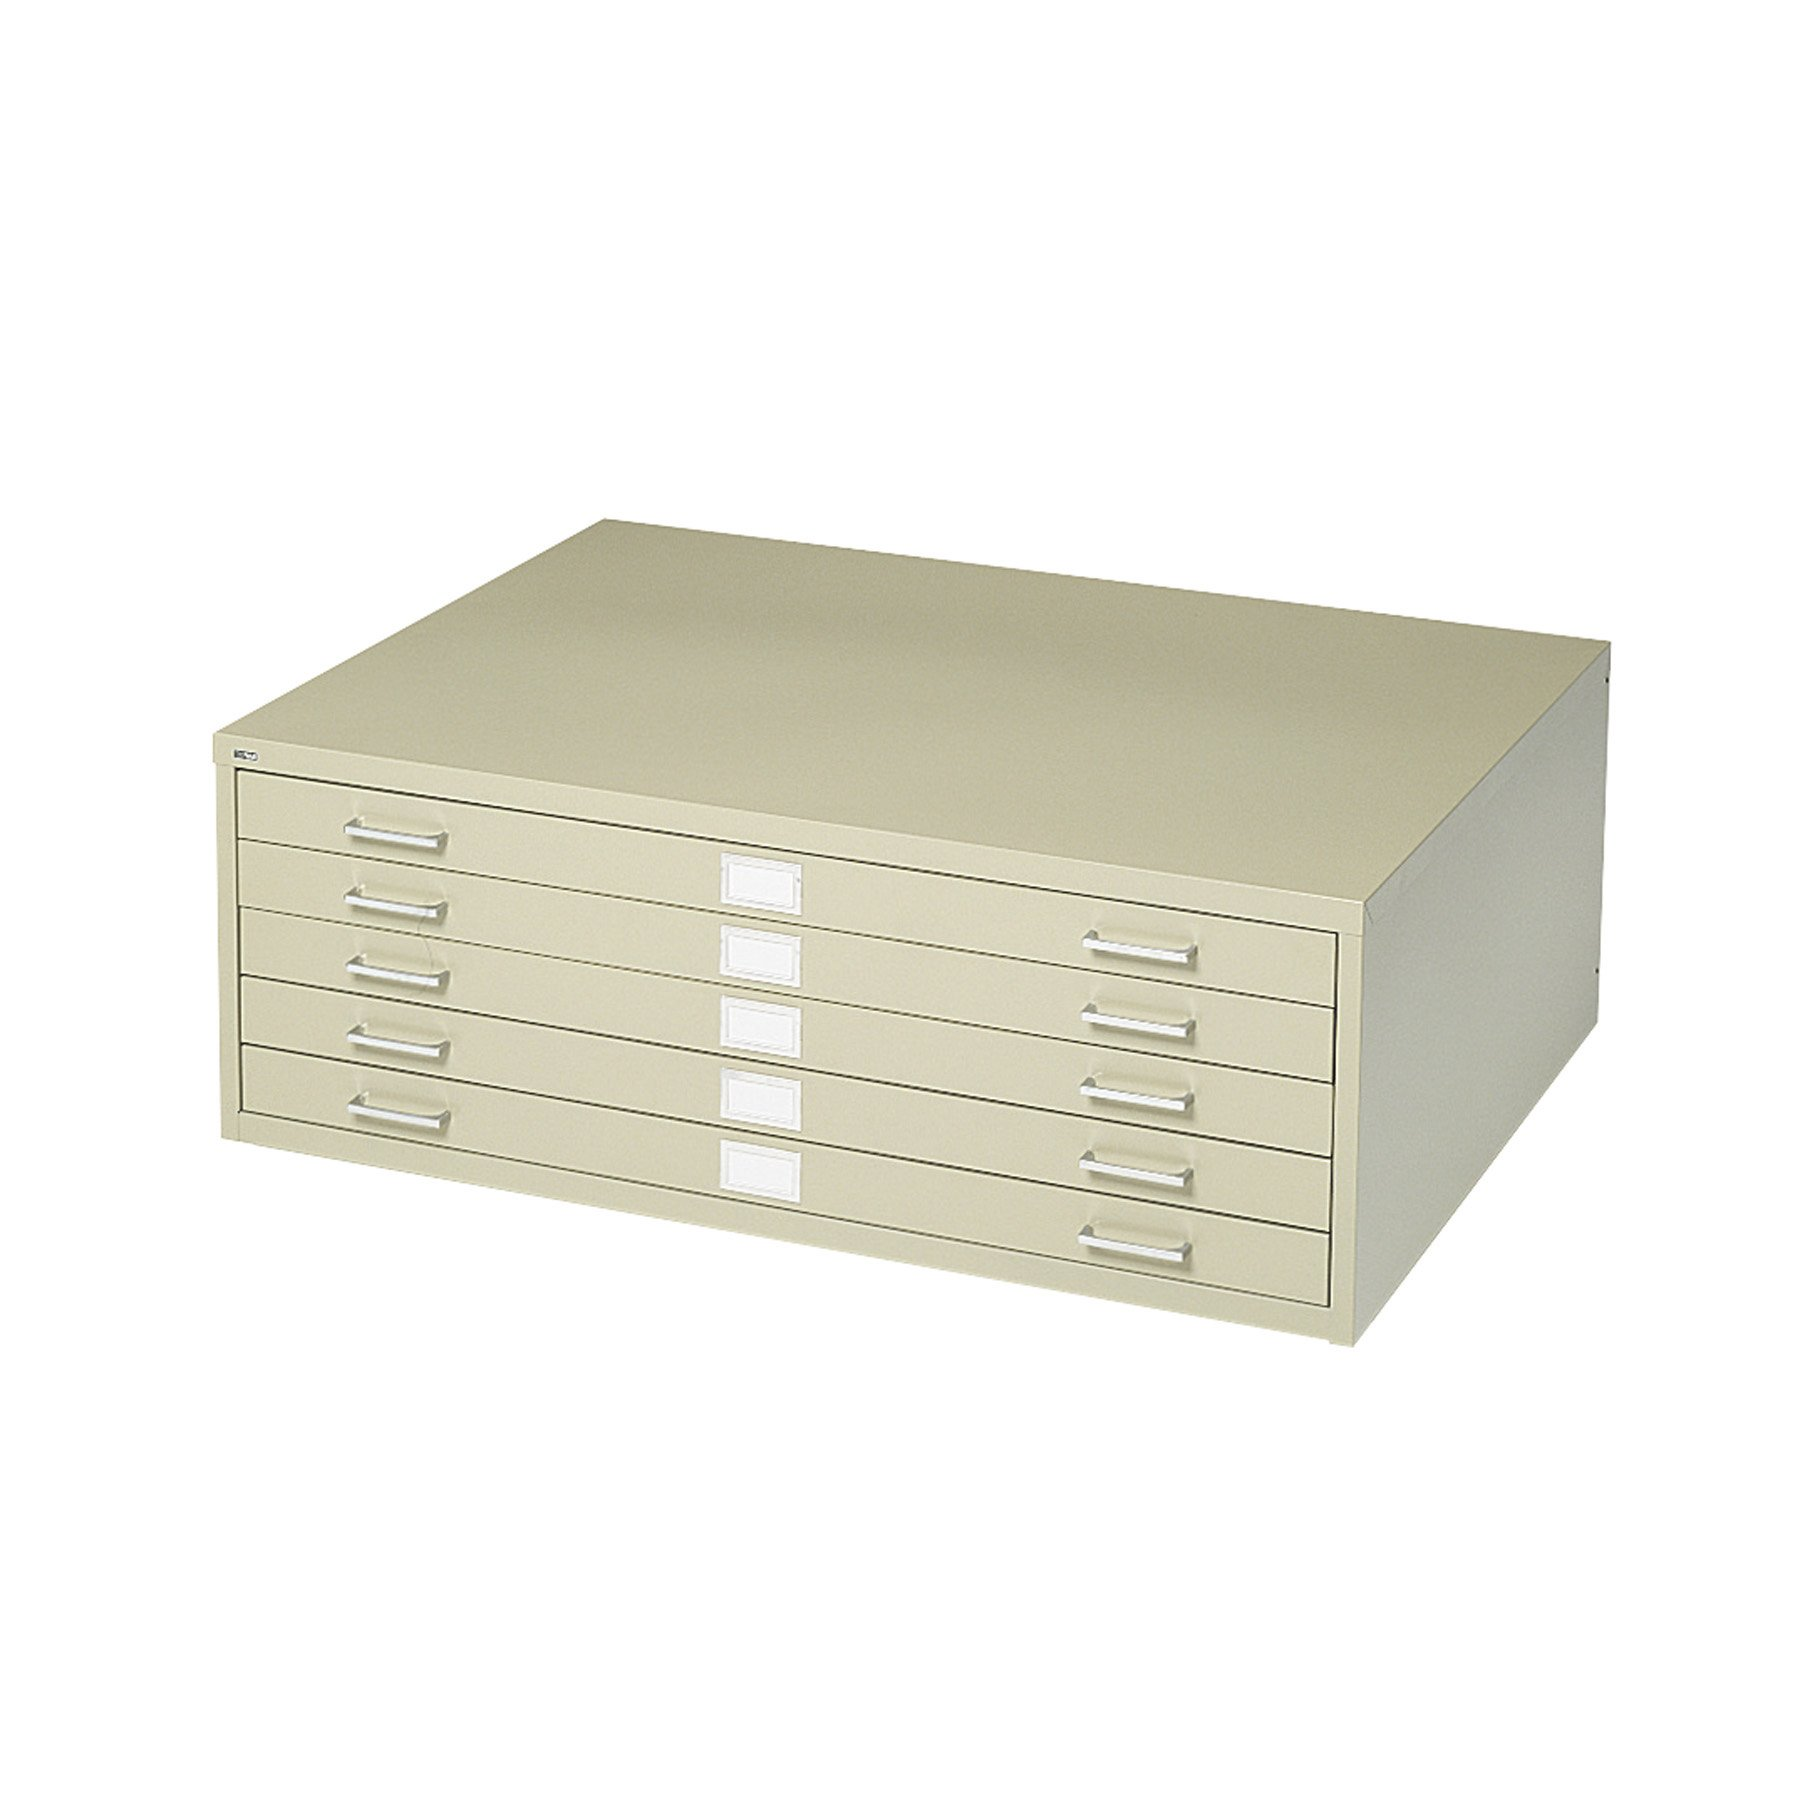 Safco Products Flat File for 36''W x 24''D Documents, 5-Drawer (Additional options sold separately), Tropic Sand by Safco